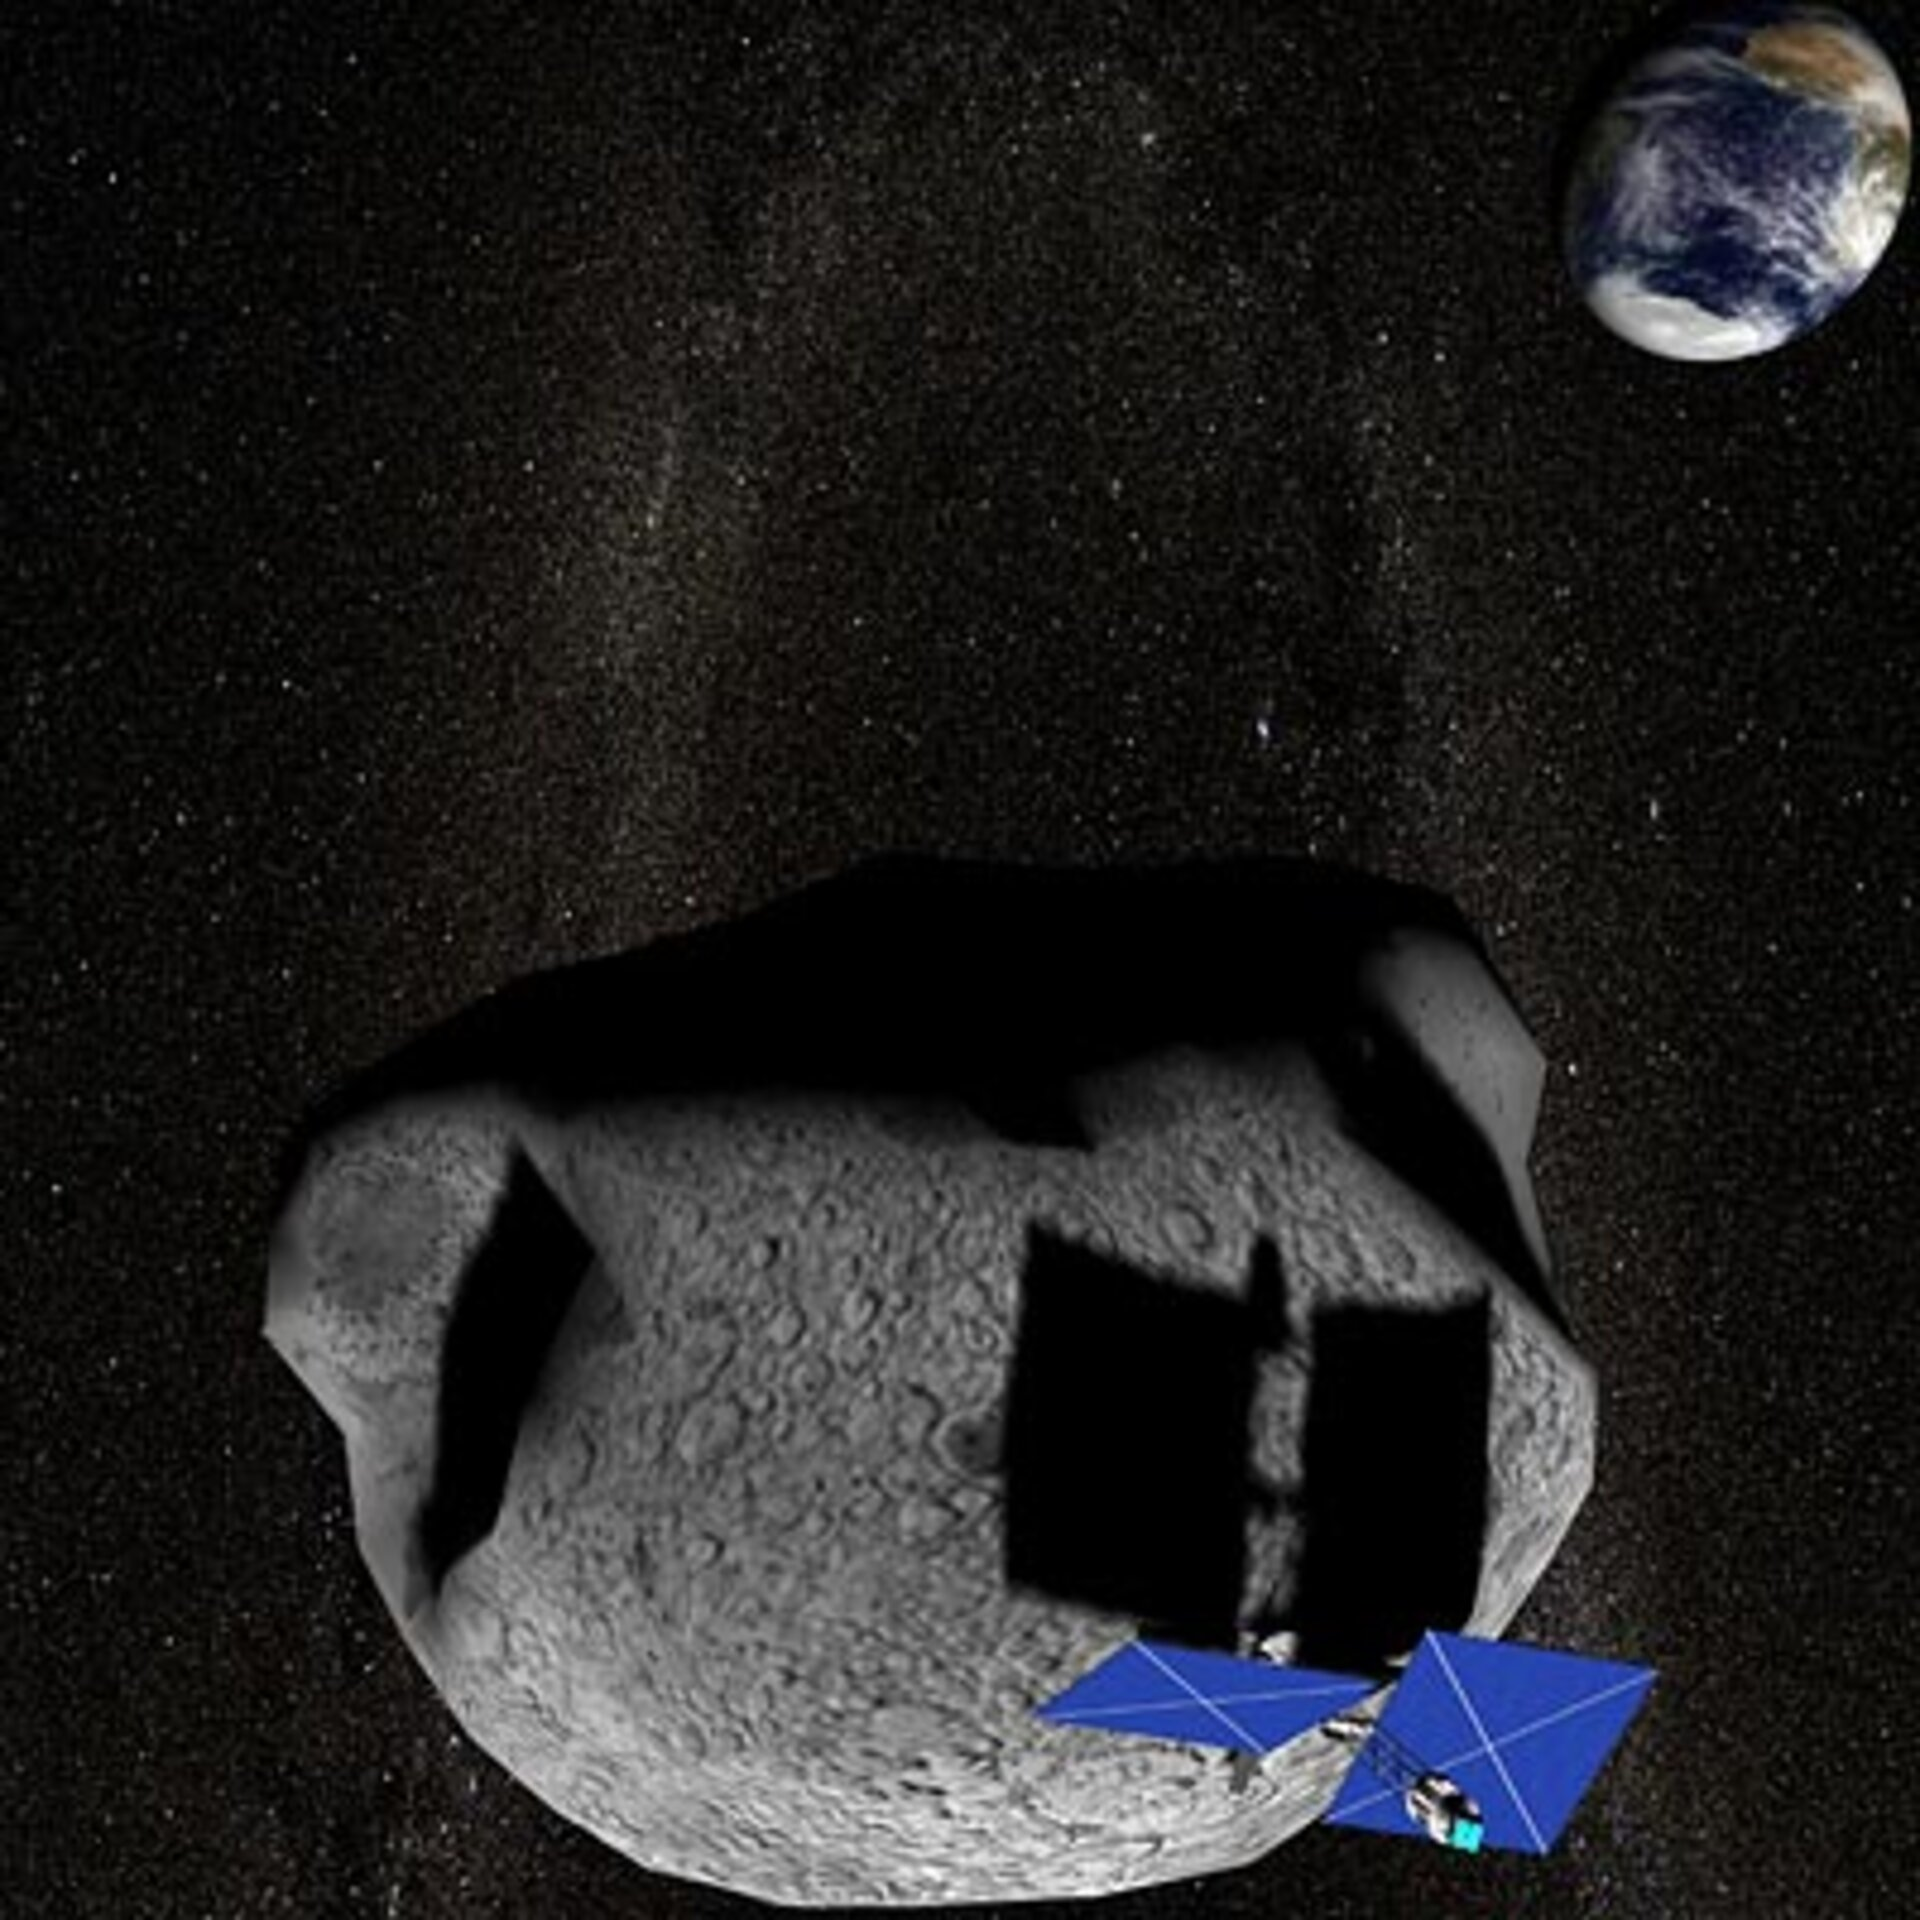 Tethering an asteroid to spin it